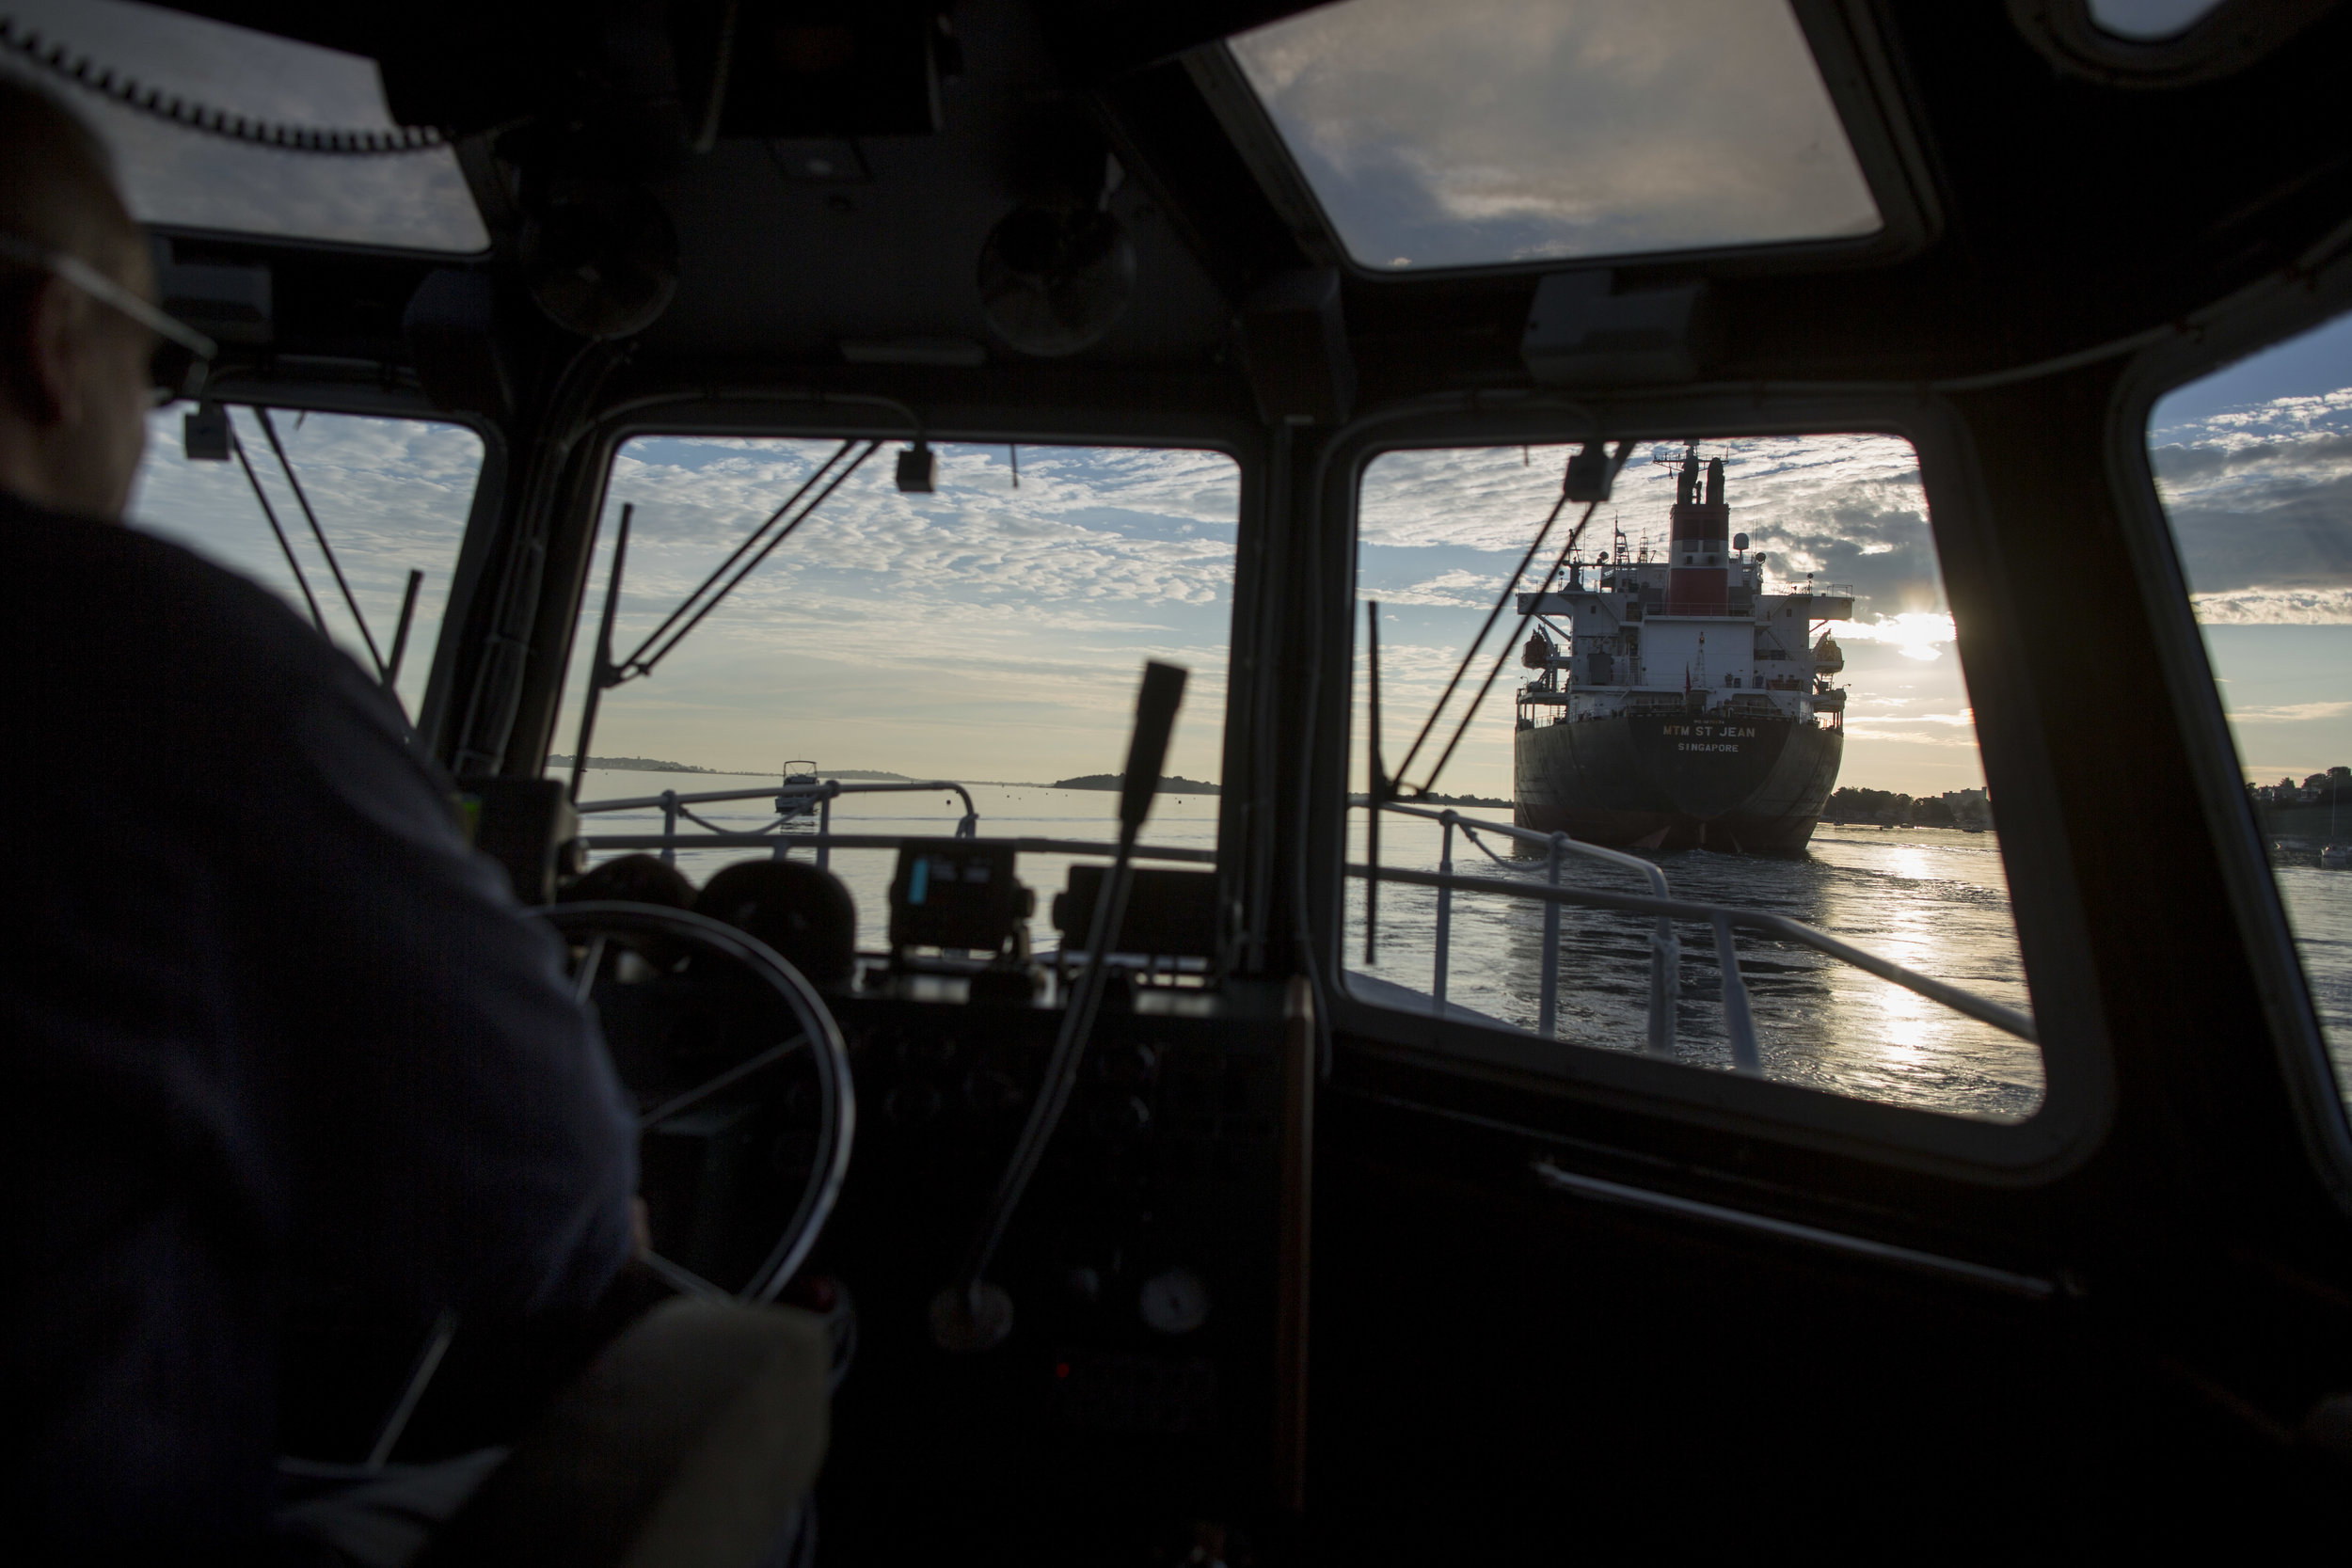 Pilot Boat Captain Joseph Maloney approaches the chemical tanker MTM St. Jean as it leaves Boston Harbor to pick up Harbor Pilot Scott MacNeil on Aug. 16.